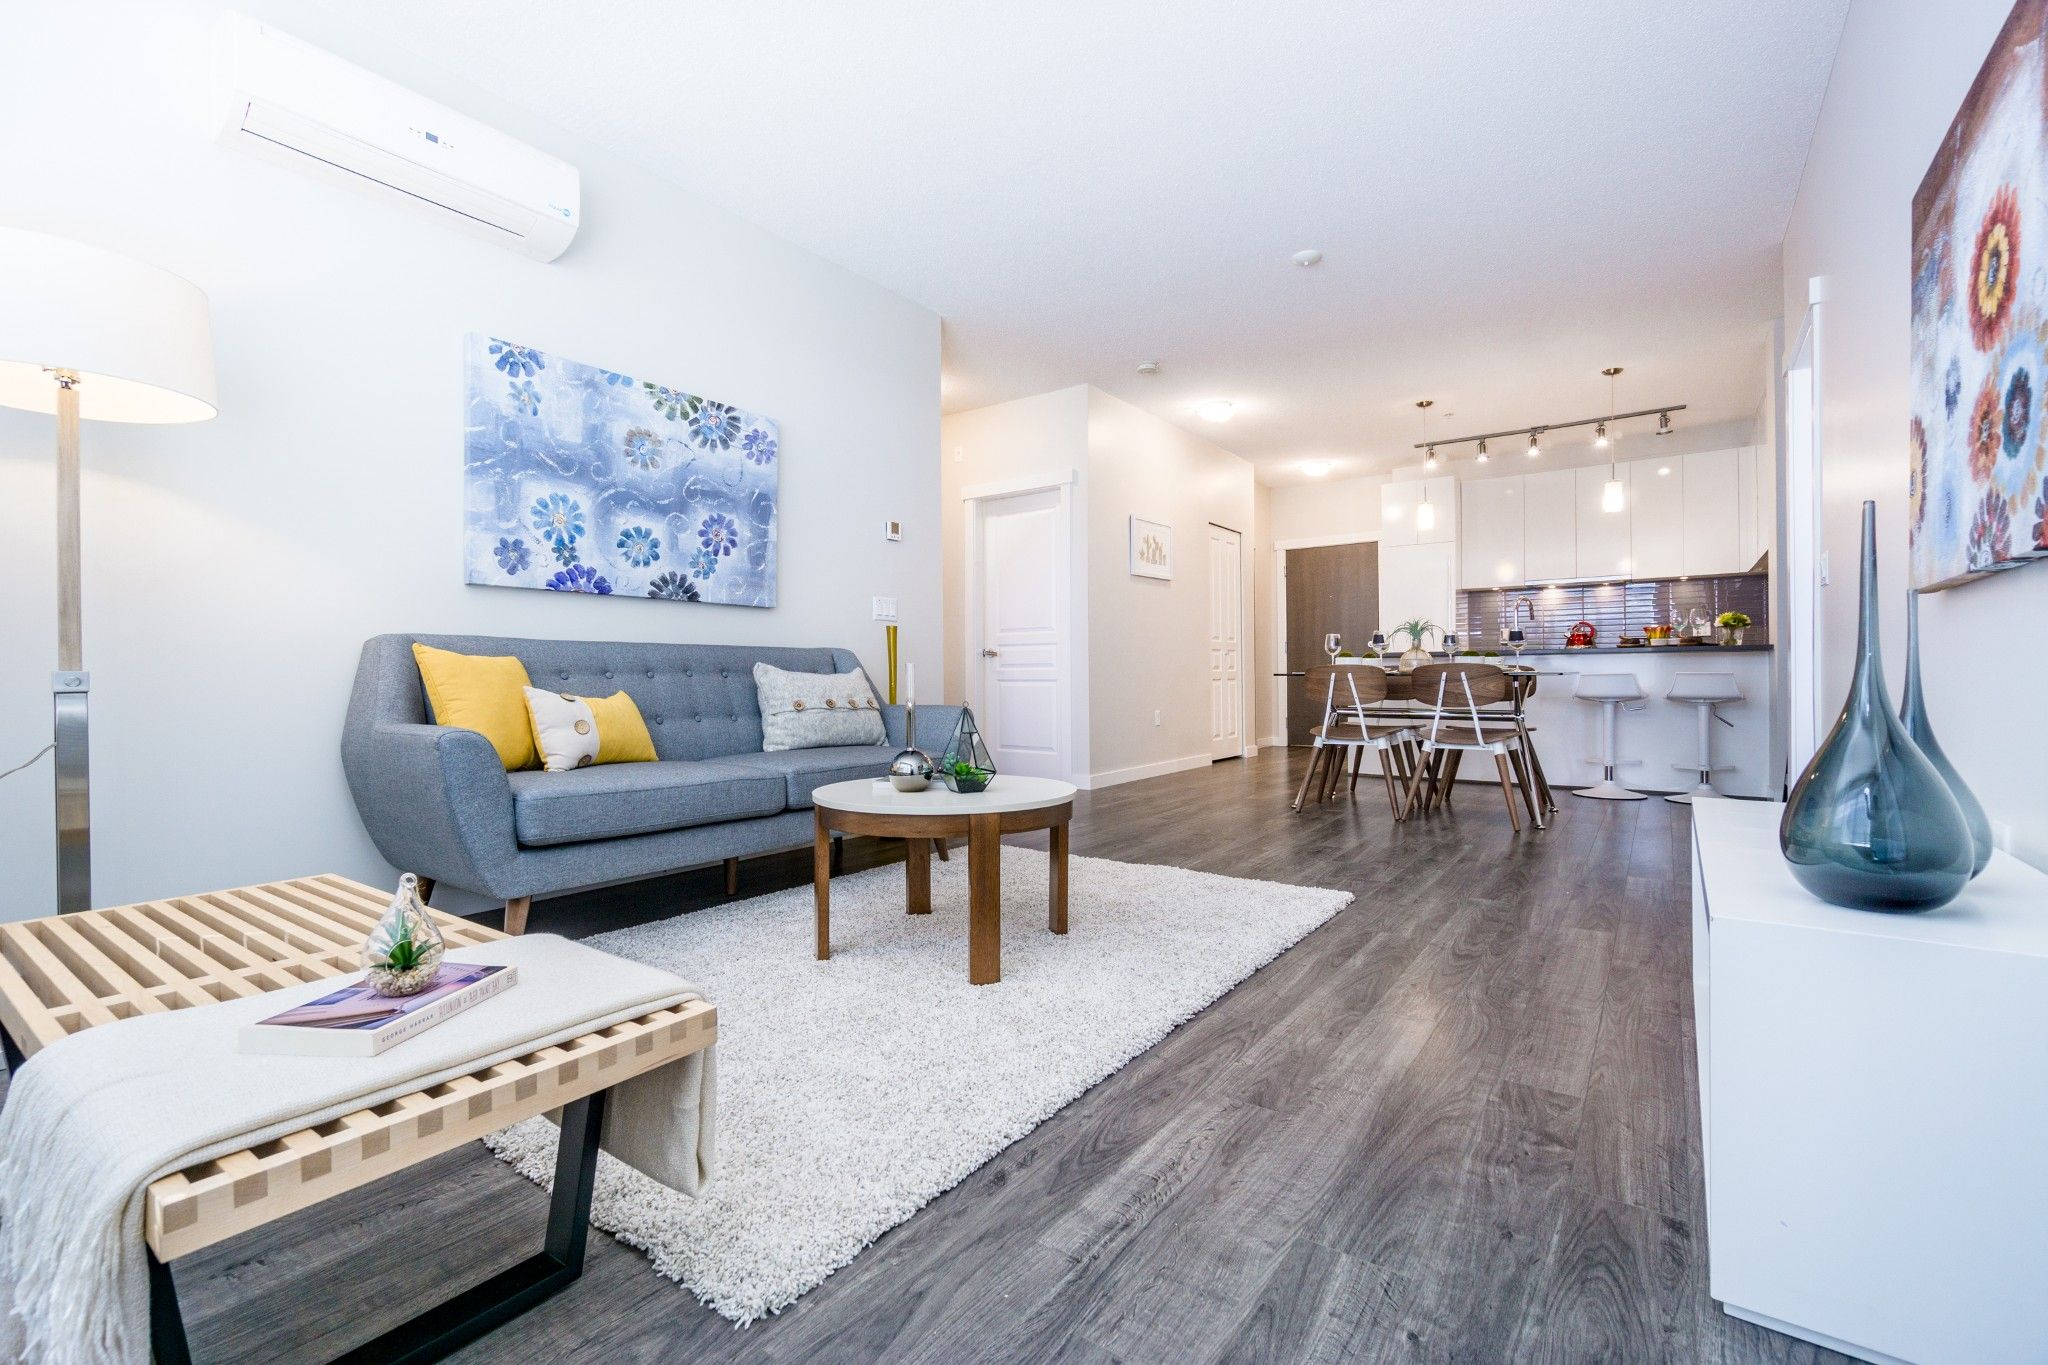 """Main Photo: 402 9311 ALEXANDRA Road in Richmond: West Cambie Condo for sale in """"ALEXANDRA COURT"""" : MLS®# R2266613"""